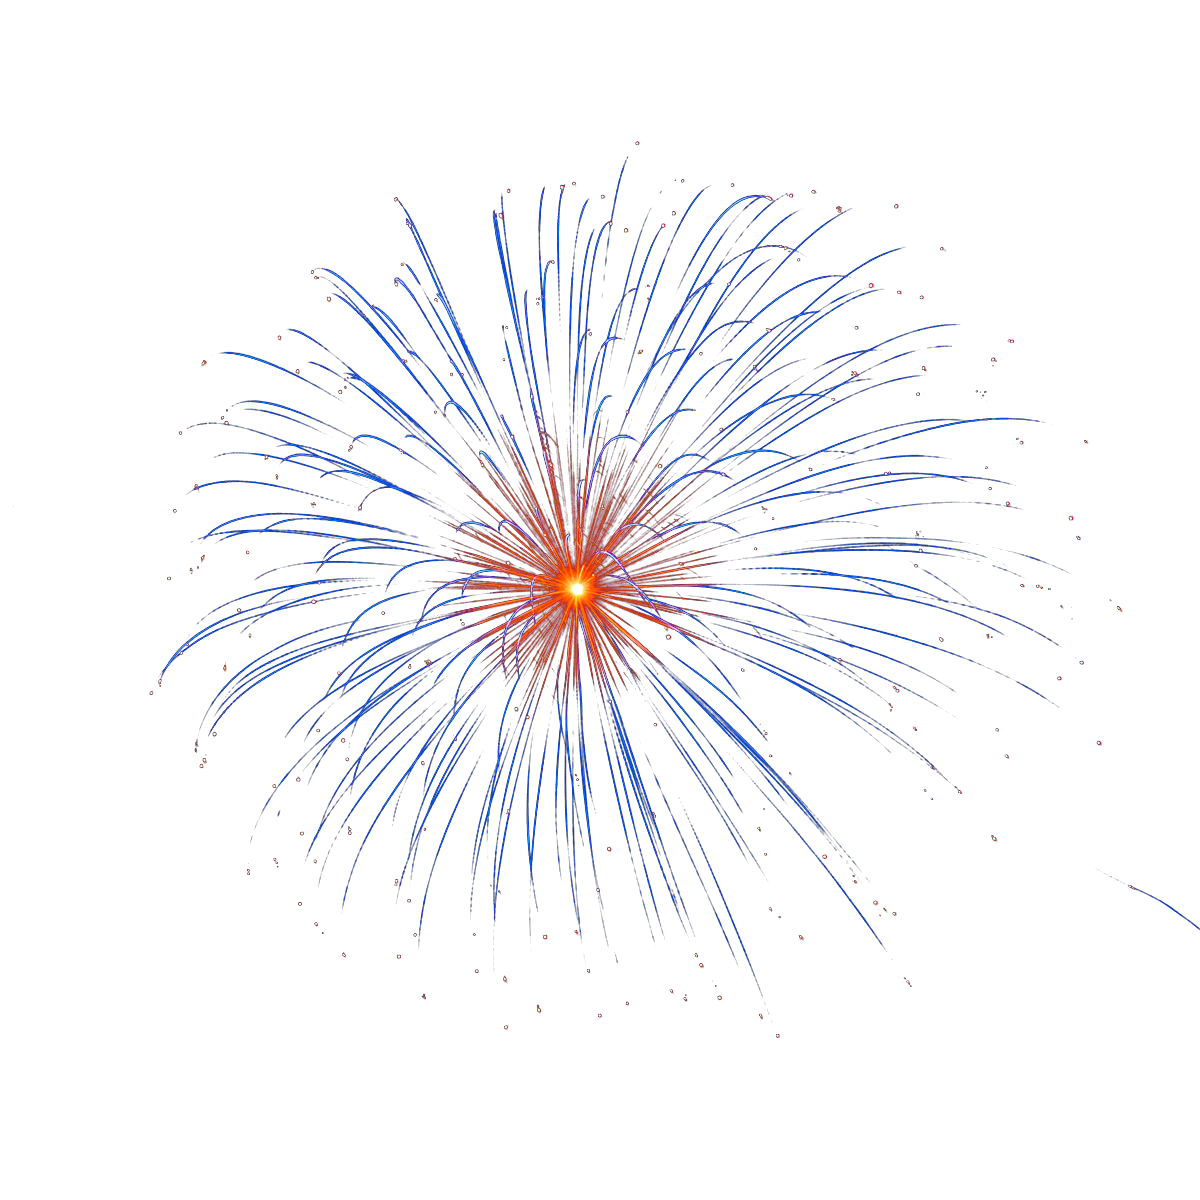 Clipart fireworks psd. Png images free download